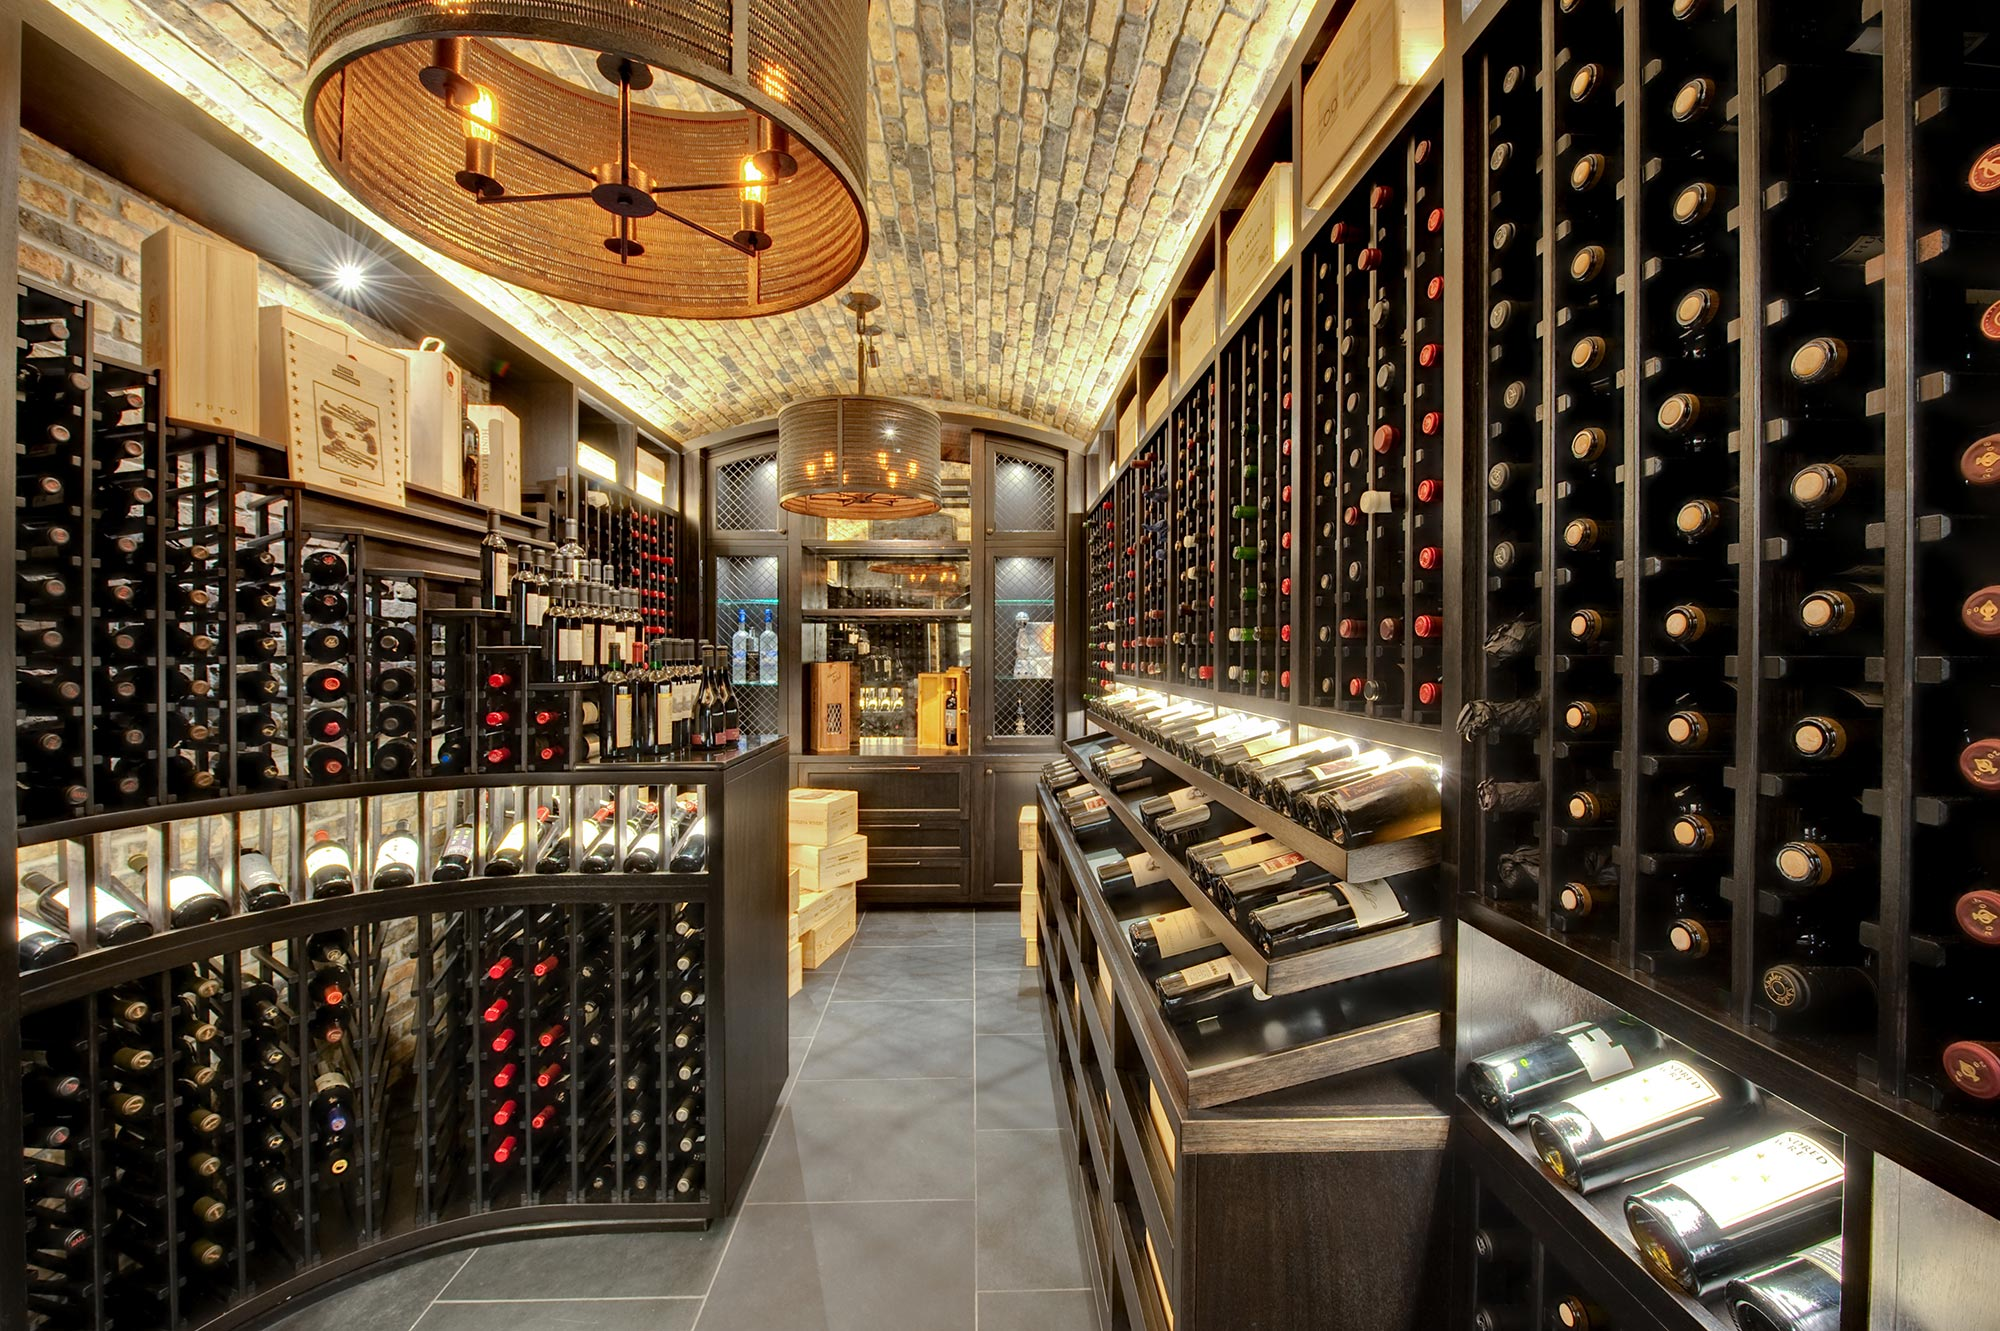 wine cellar furniture. Custom Wine Cellar Featuring Curved Waterfall Cabinetry And Furniture-grade Mahogany. WC1-01 Furniture